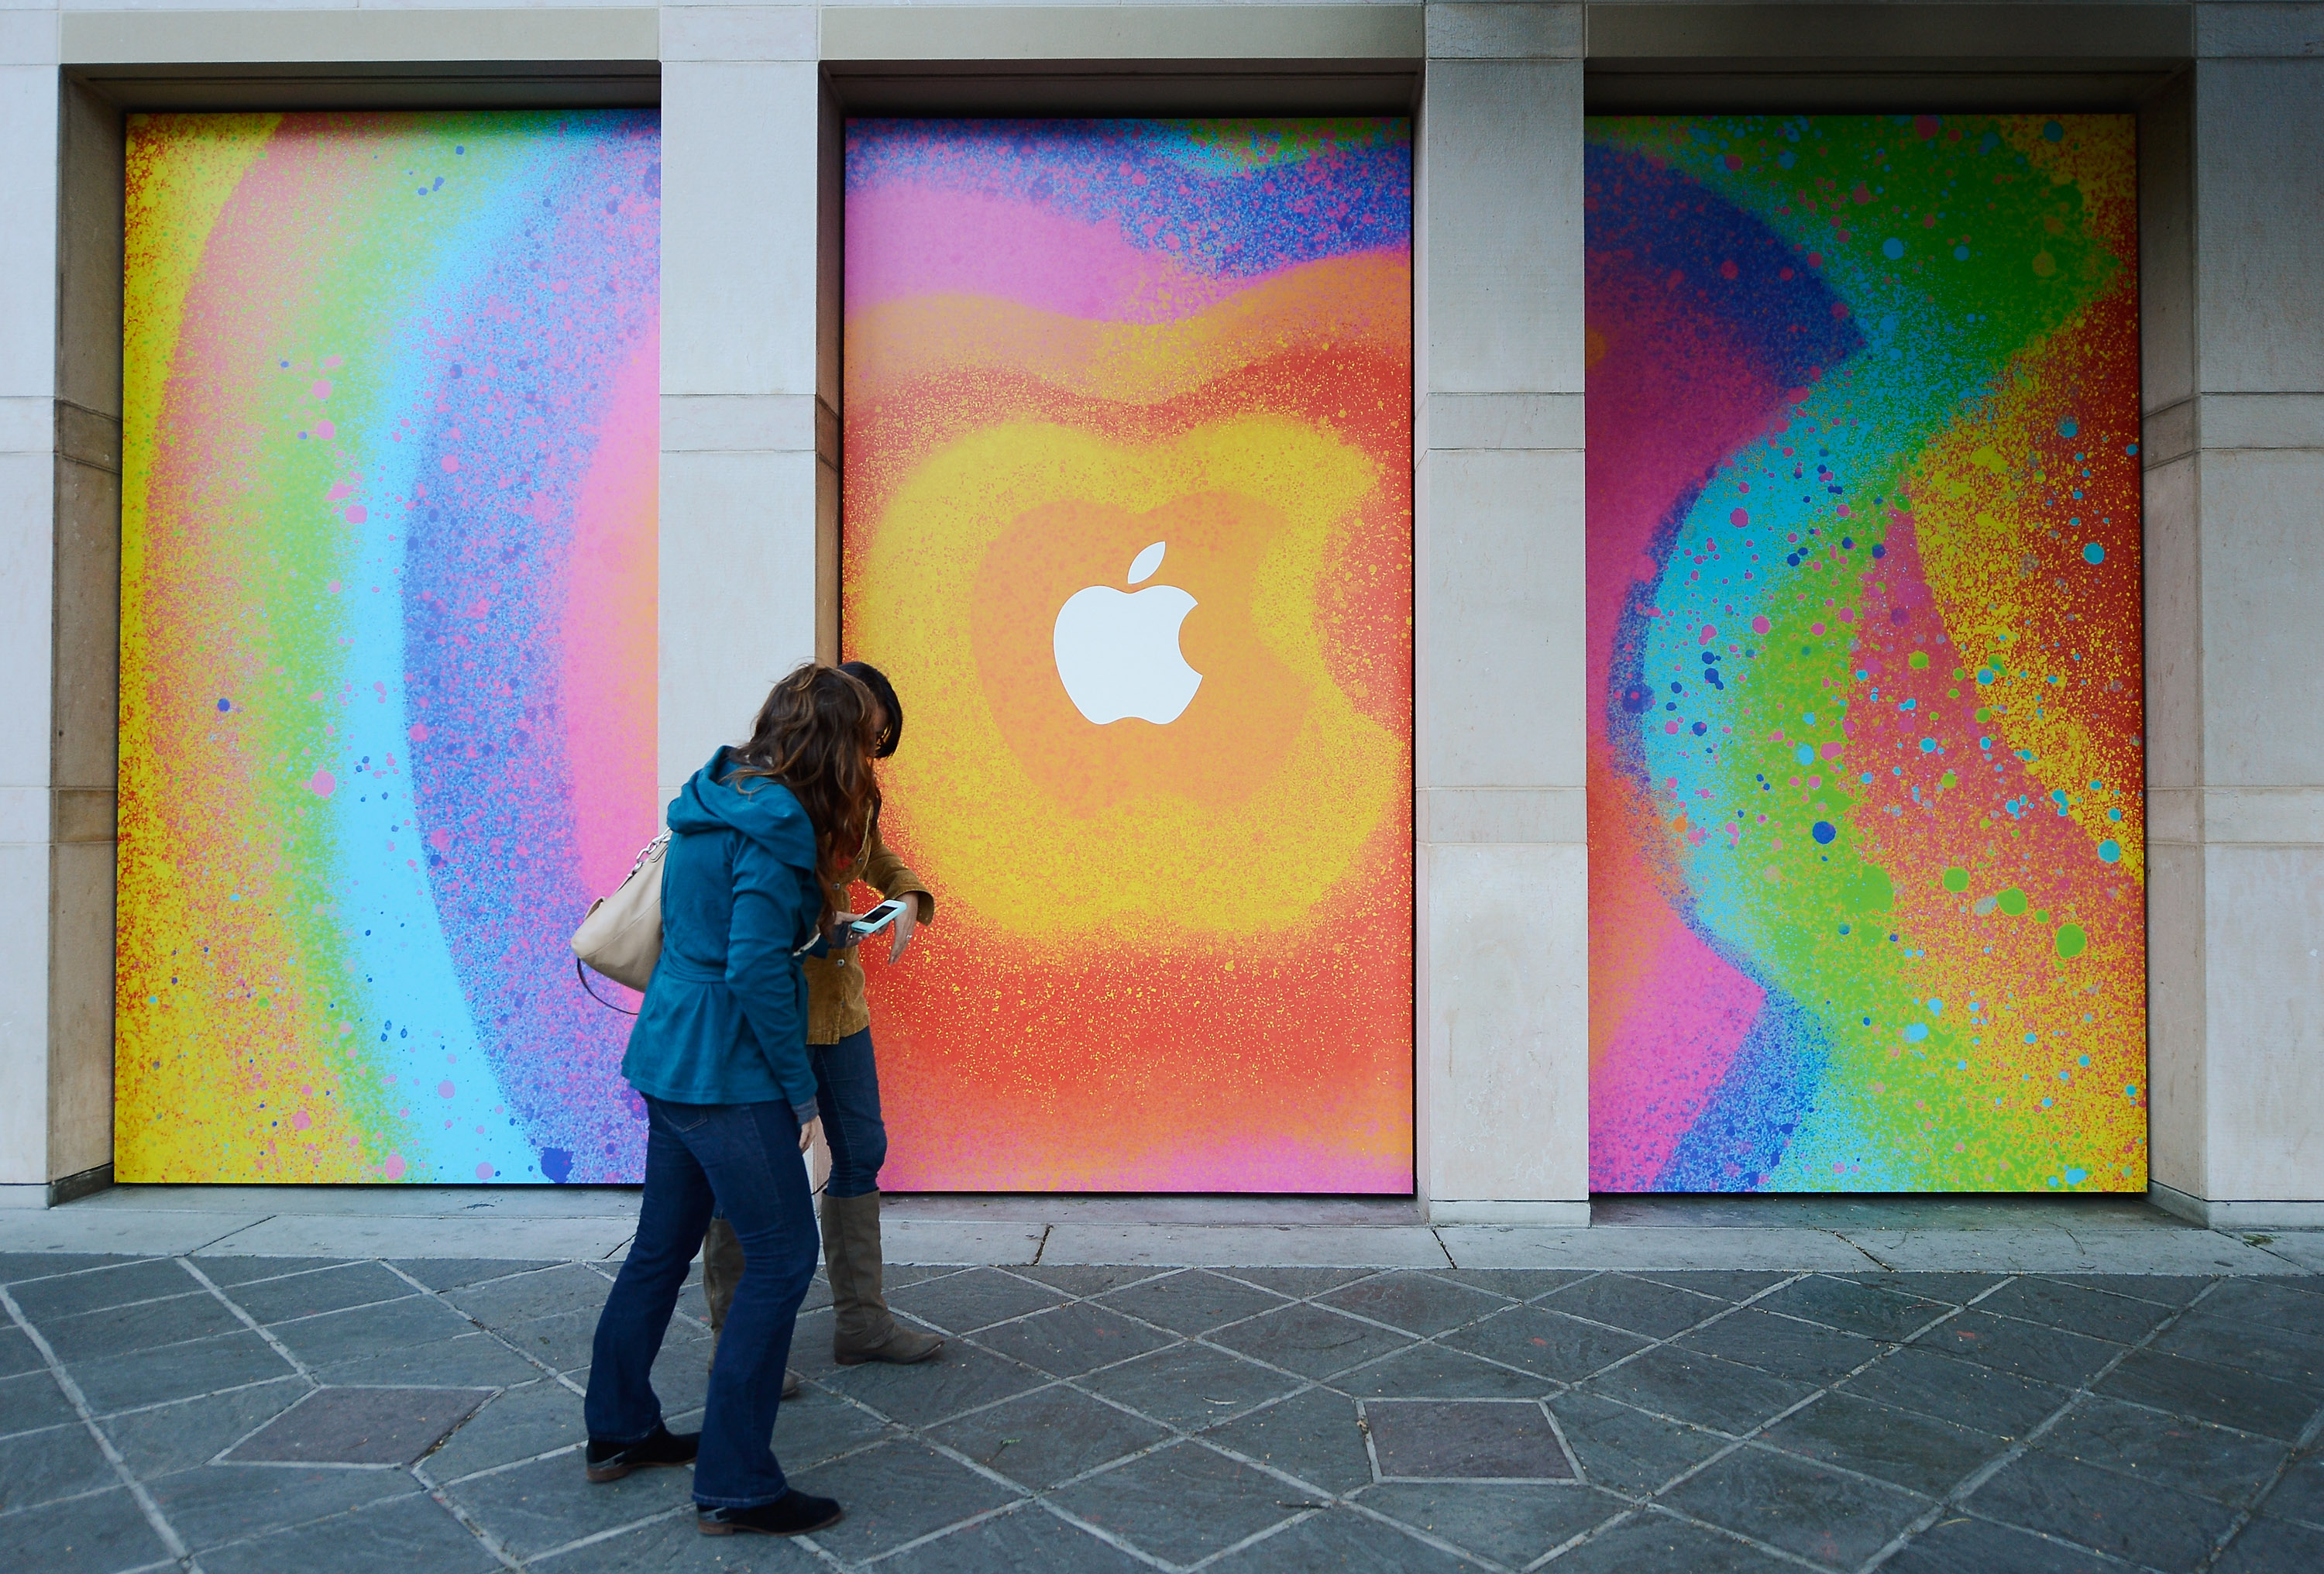 Good News: Apple's special event will also be live-streamed on its website